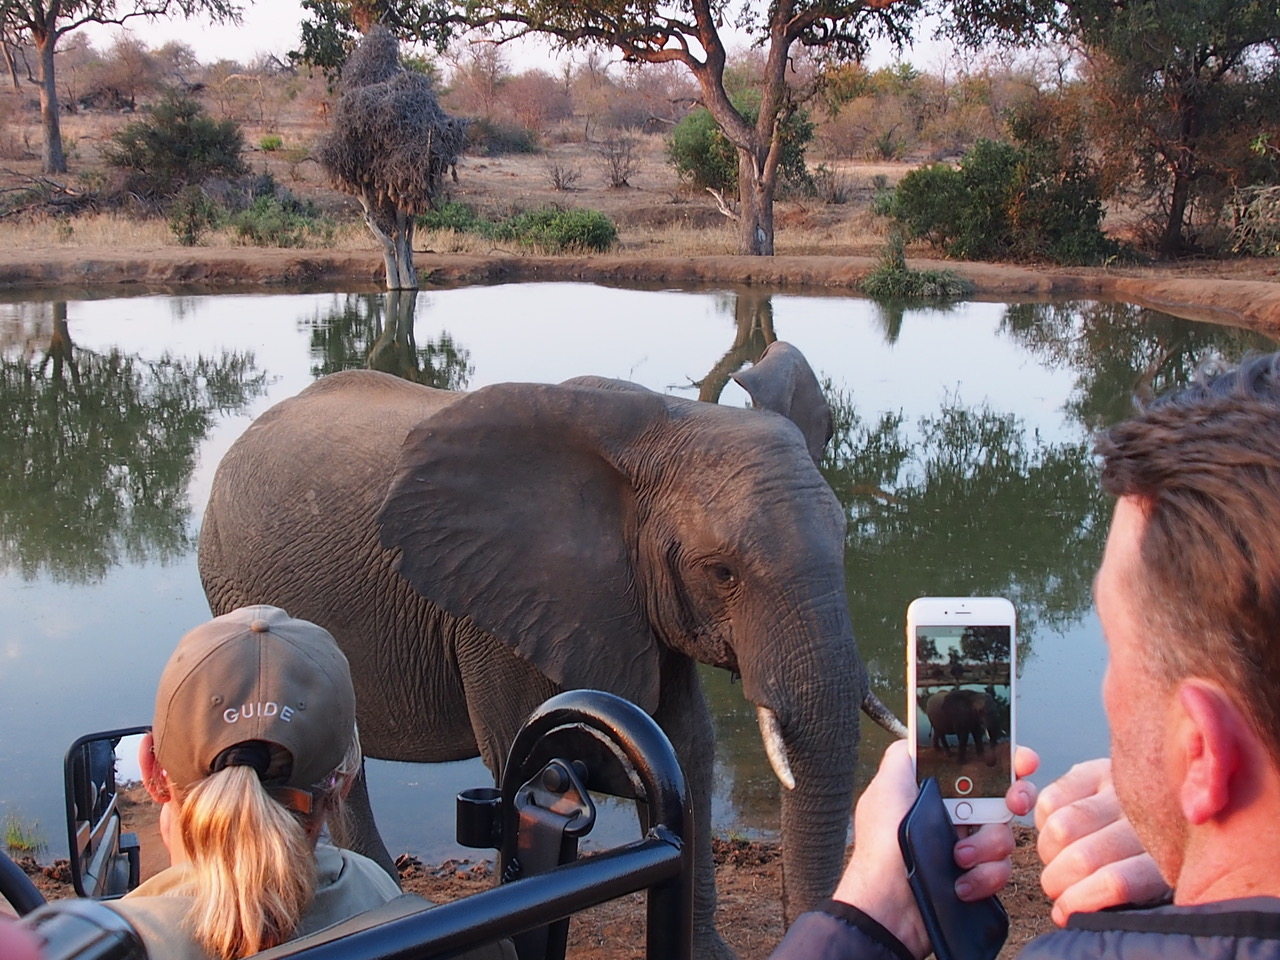 Here's How to Safari With Family in Africa In Pictures - #10 is My Favourite.